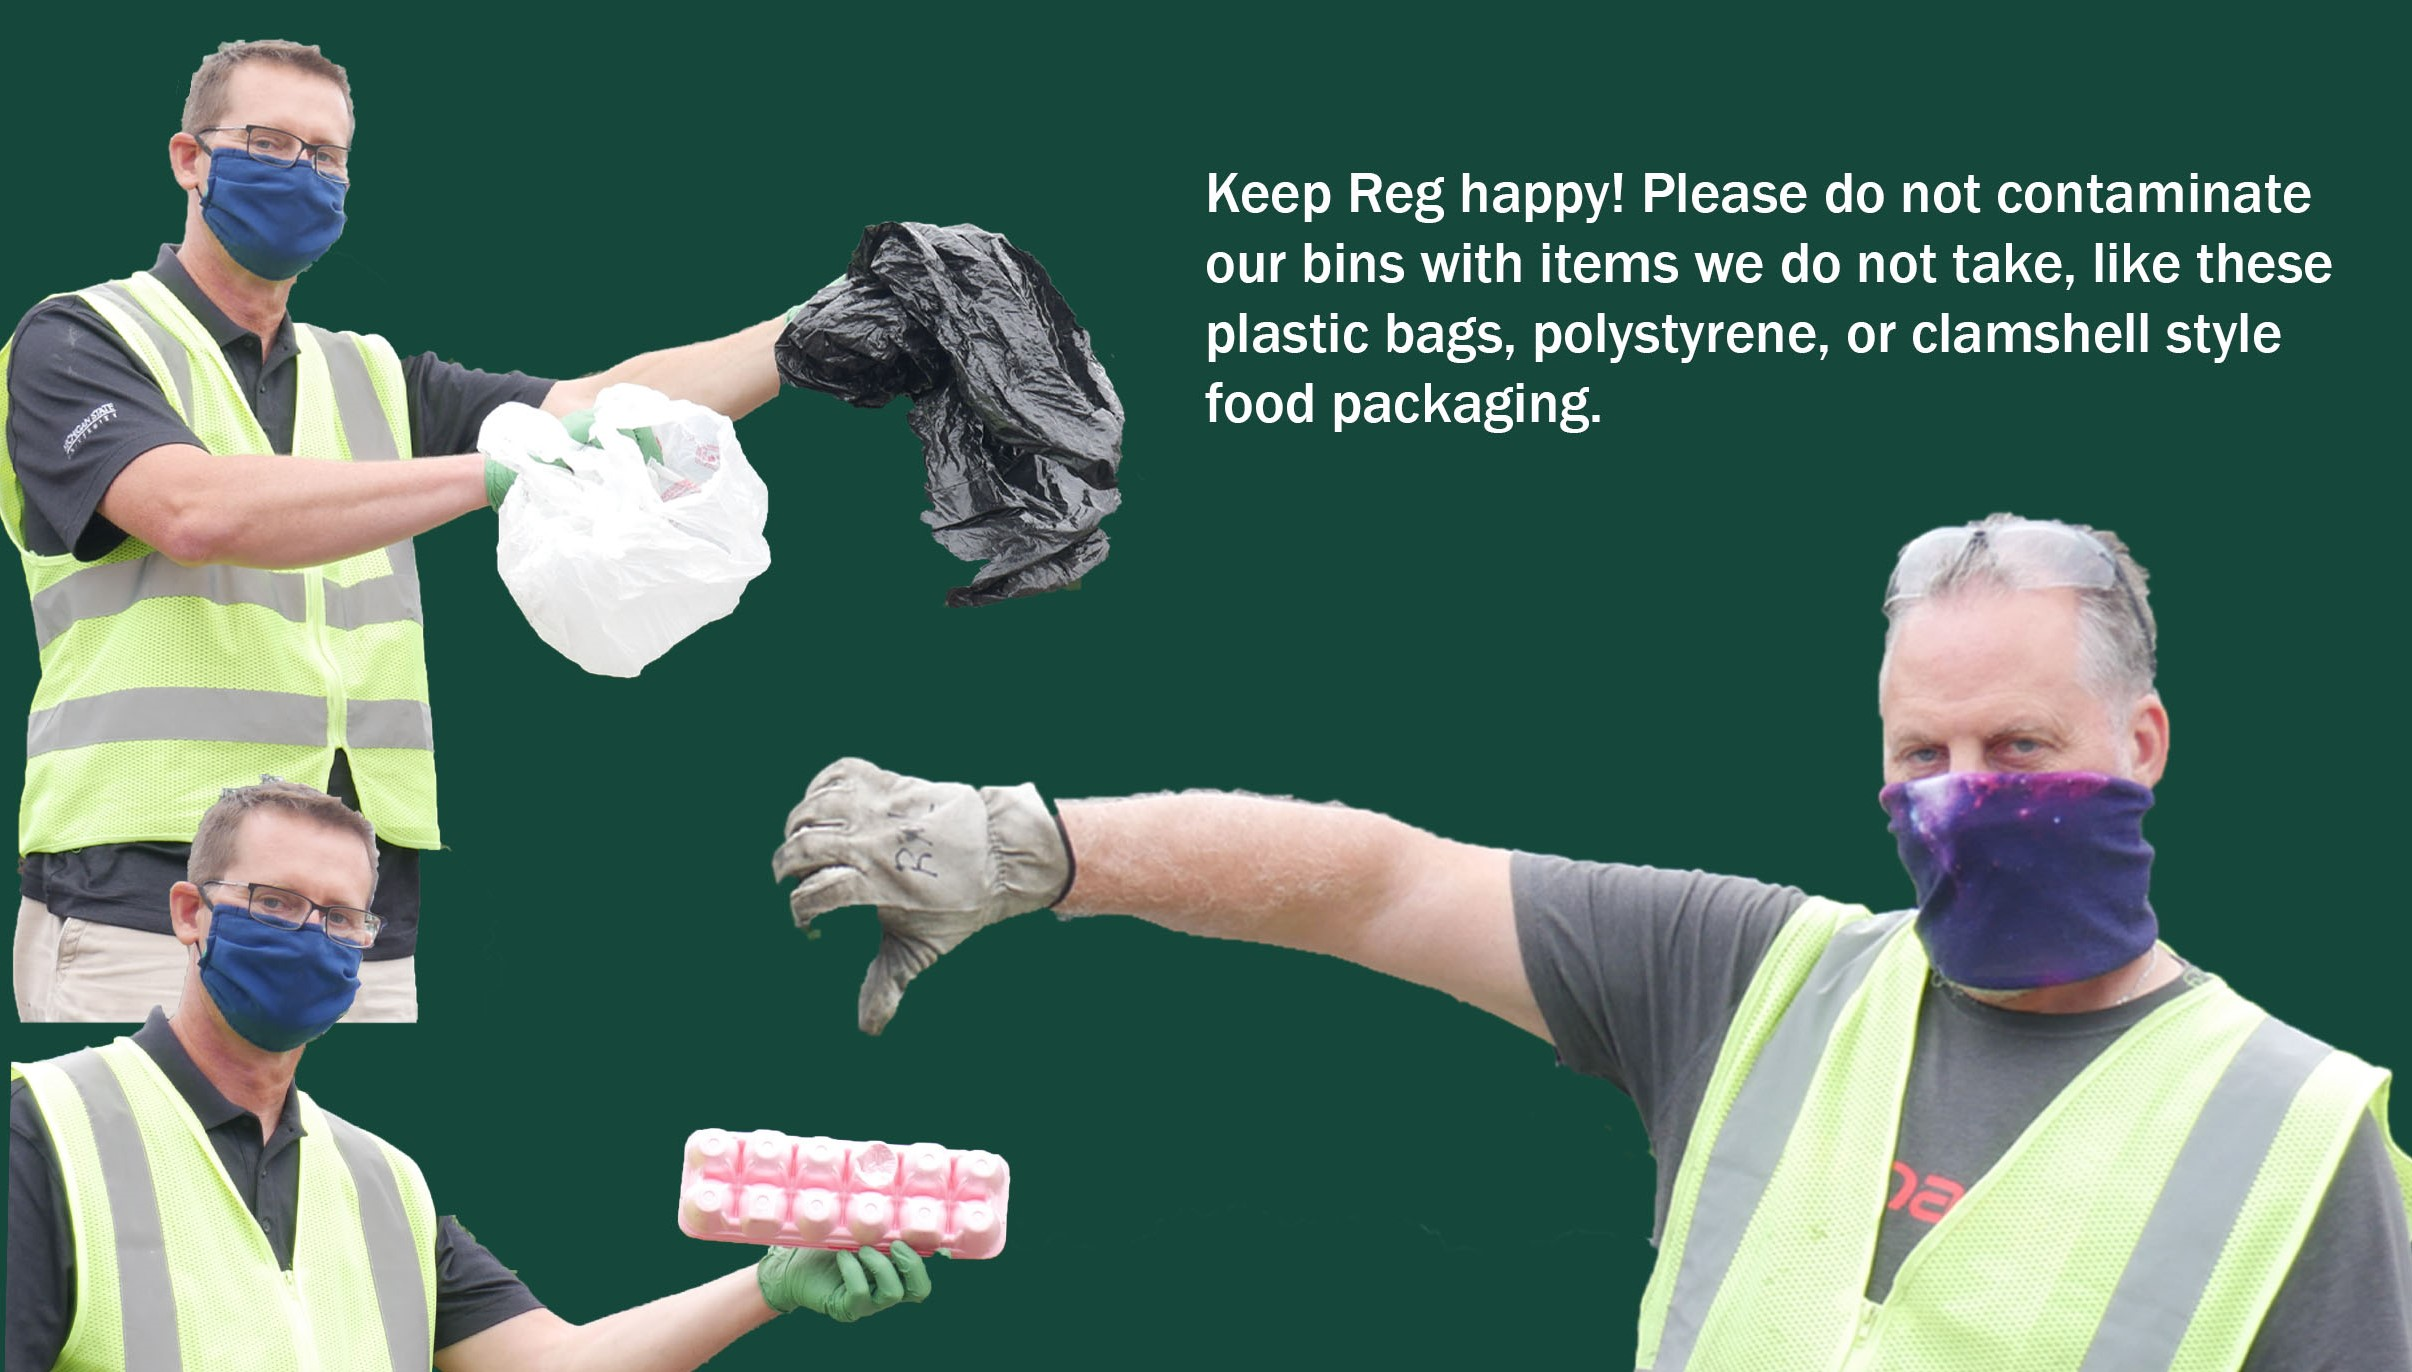 Please, keep recyclables tidy!